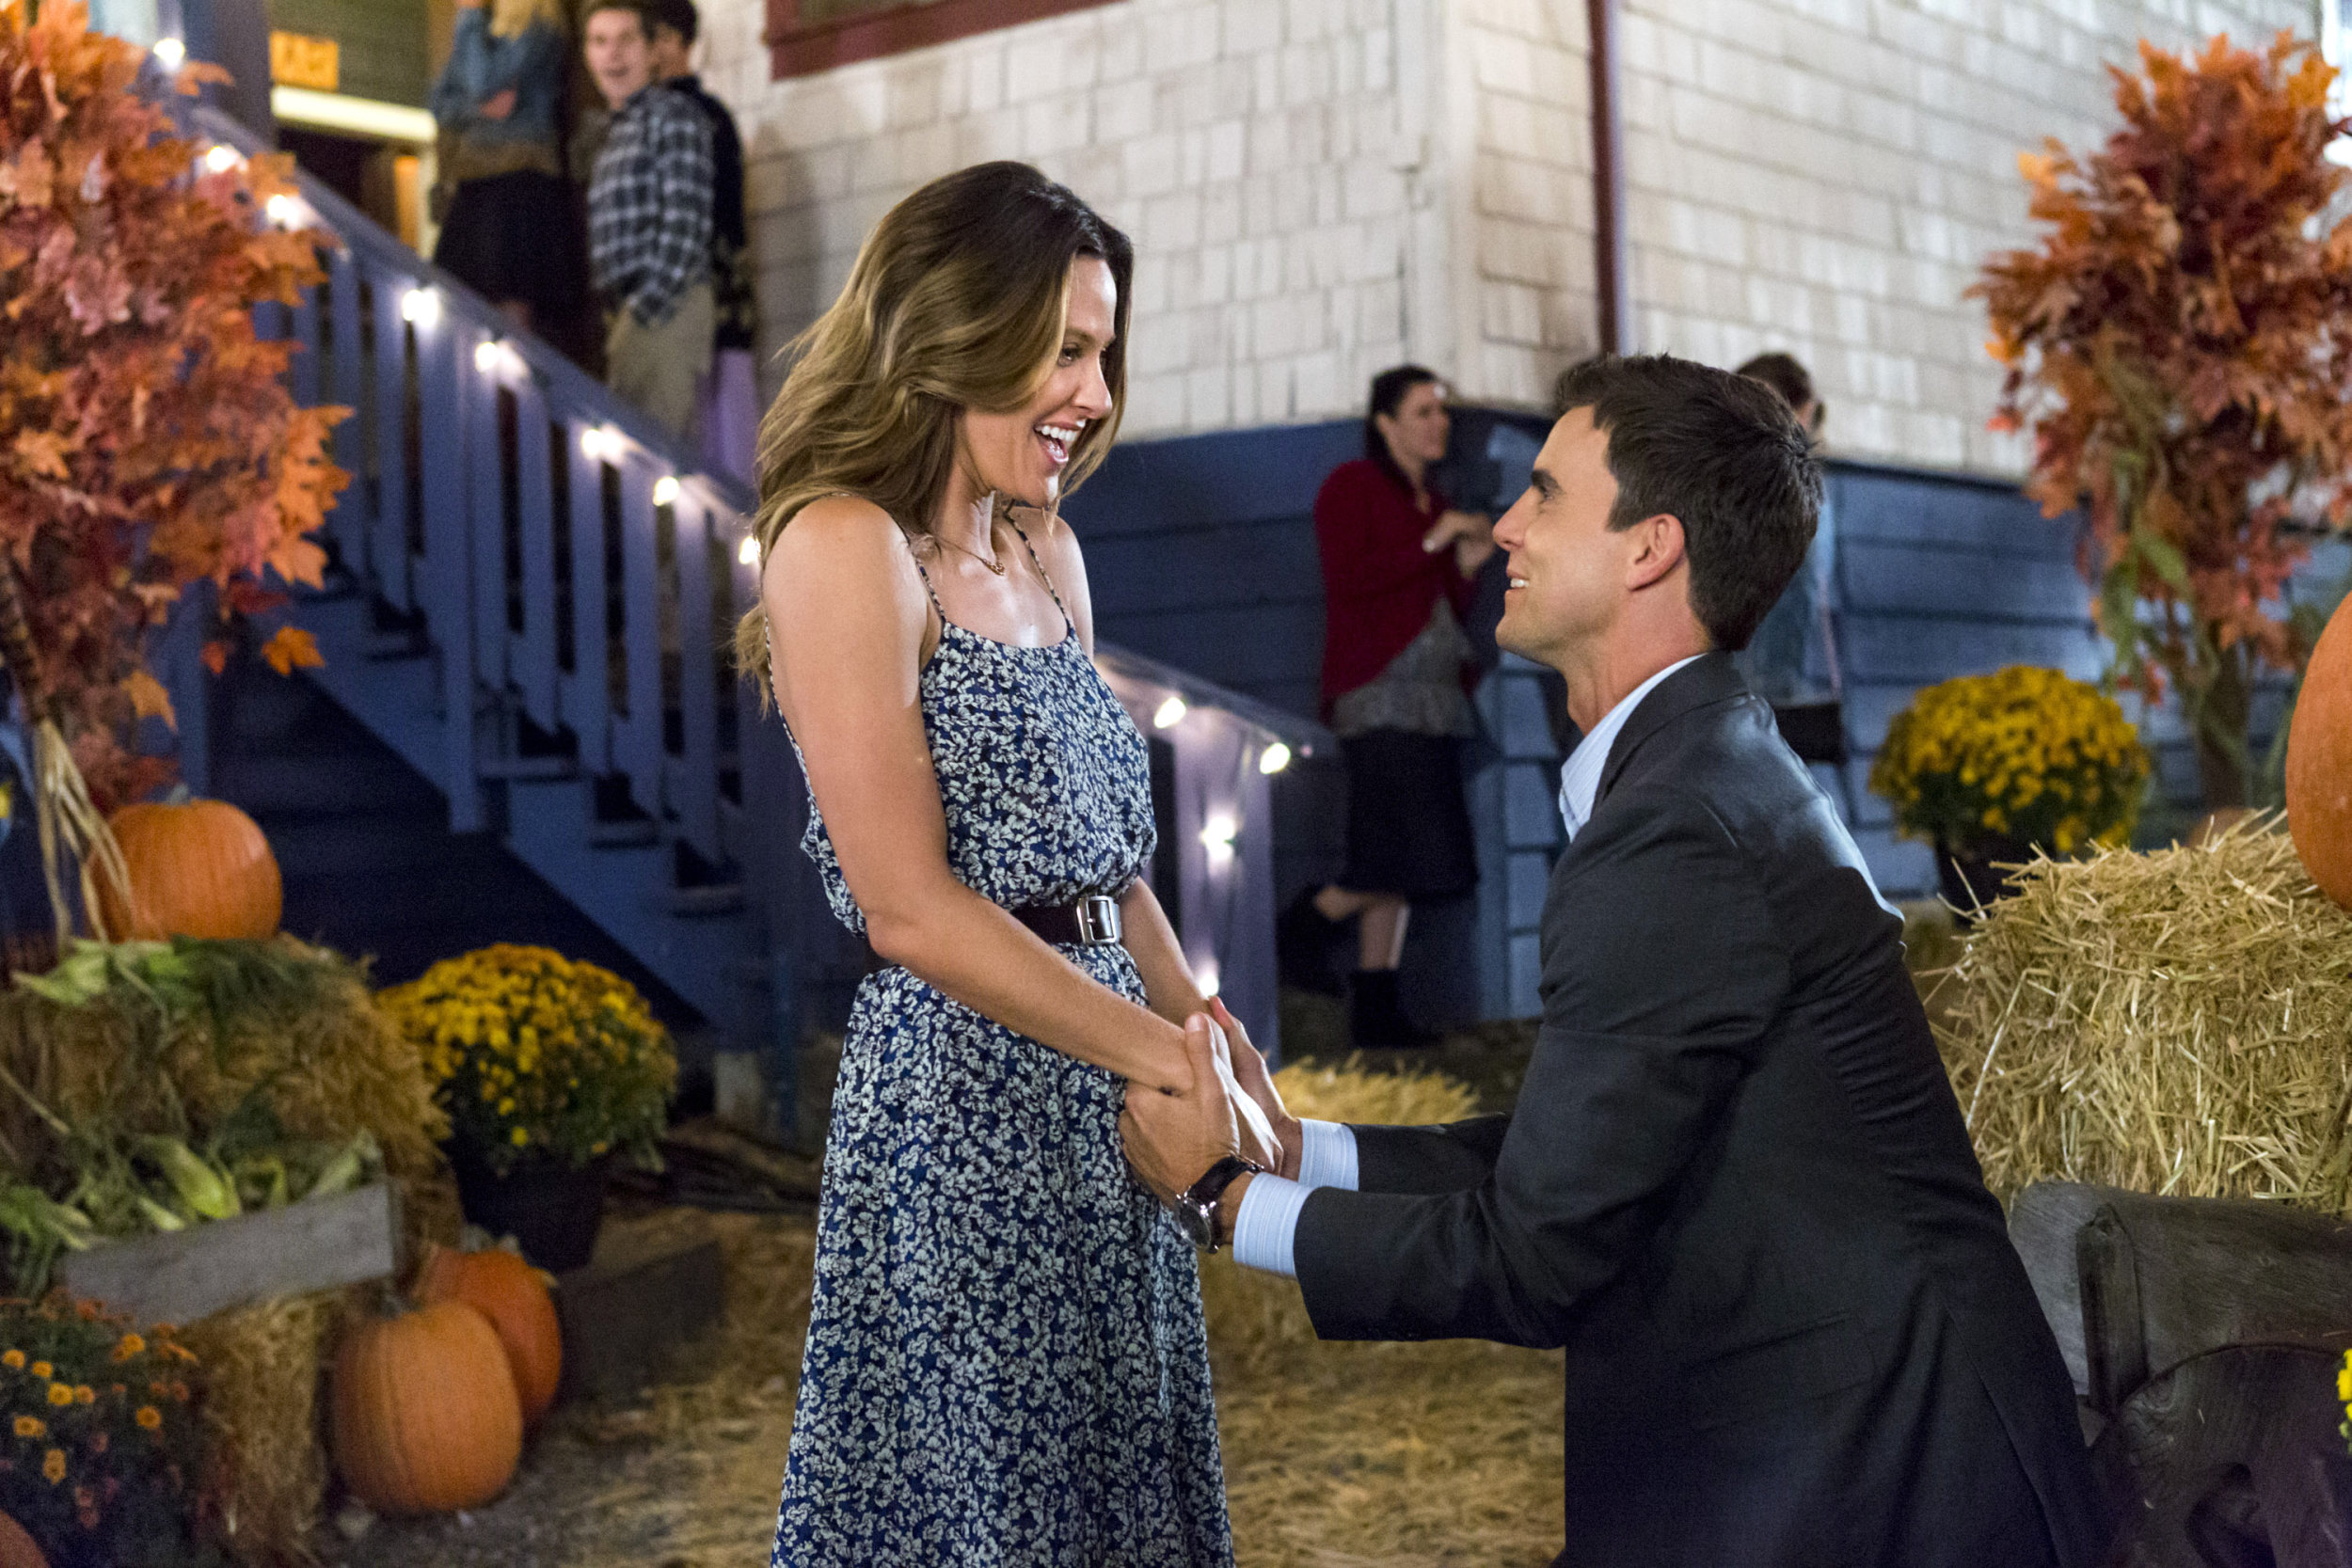 Autumn Dreams - Video | Hallmark Channel